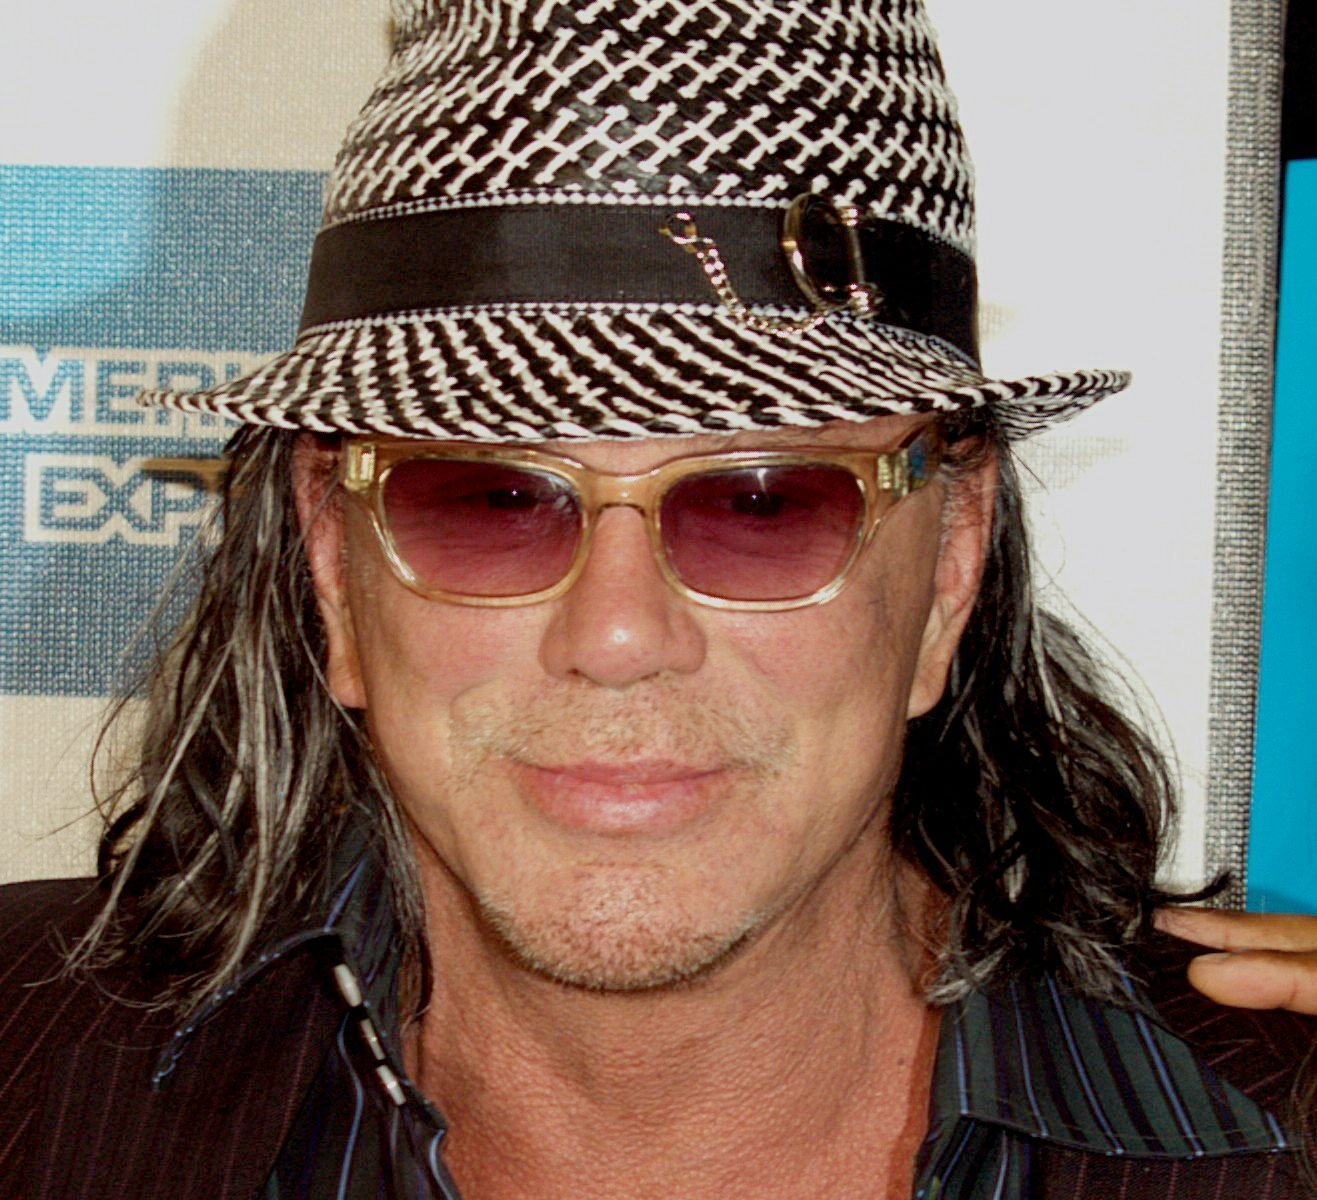 Mickey Rourke Tribeca 2009 Shankbone e1625059337852 20 Things You Never Knew About Mickey Rourke